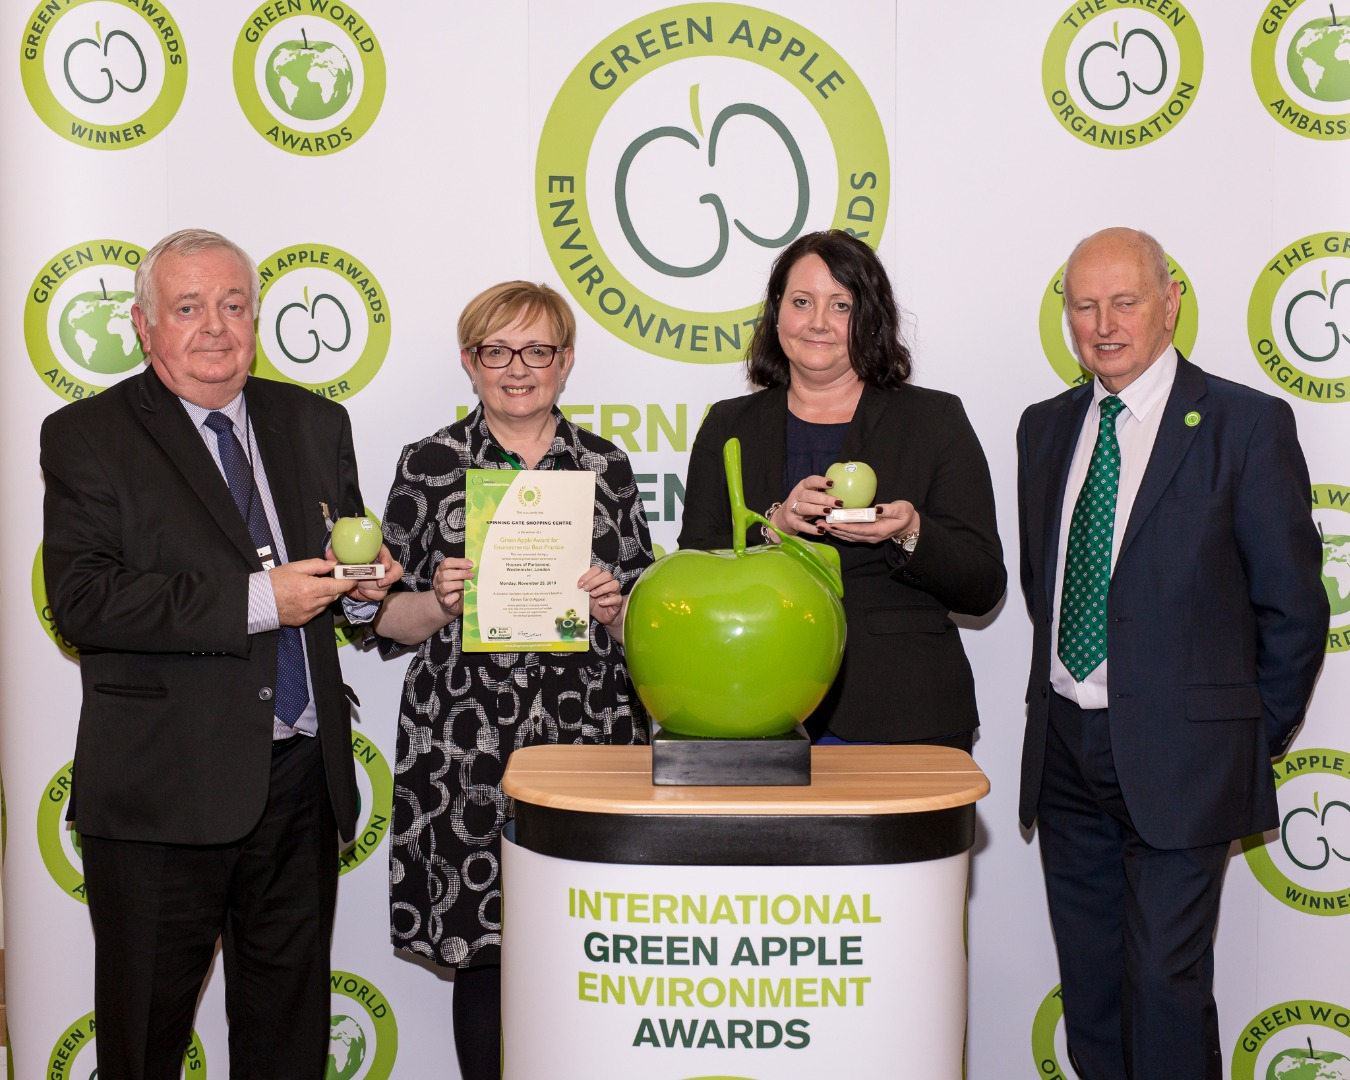 SPINNING GATE SHOPPING CENTRE AWARDED NATIONAL AWARD